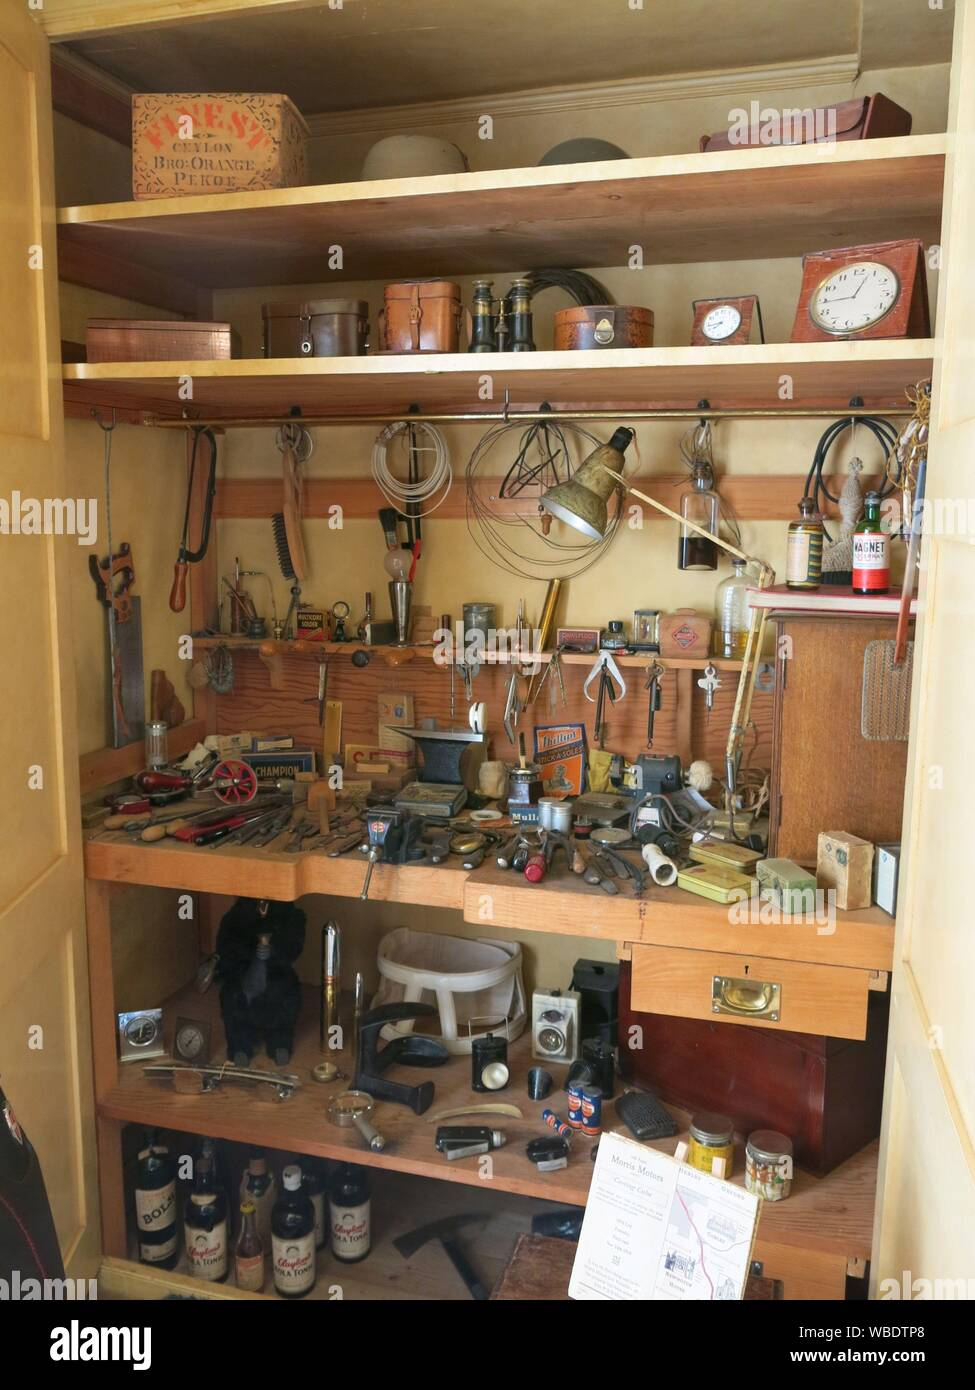 The interior of Lord Nuffield's tool cupboard in his bedroom at Nuffield Place, a time capsule from his lifetime of design and engineering. Stock Photo